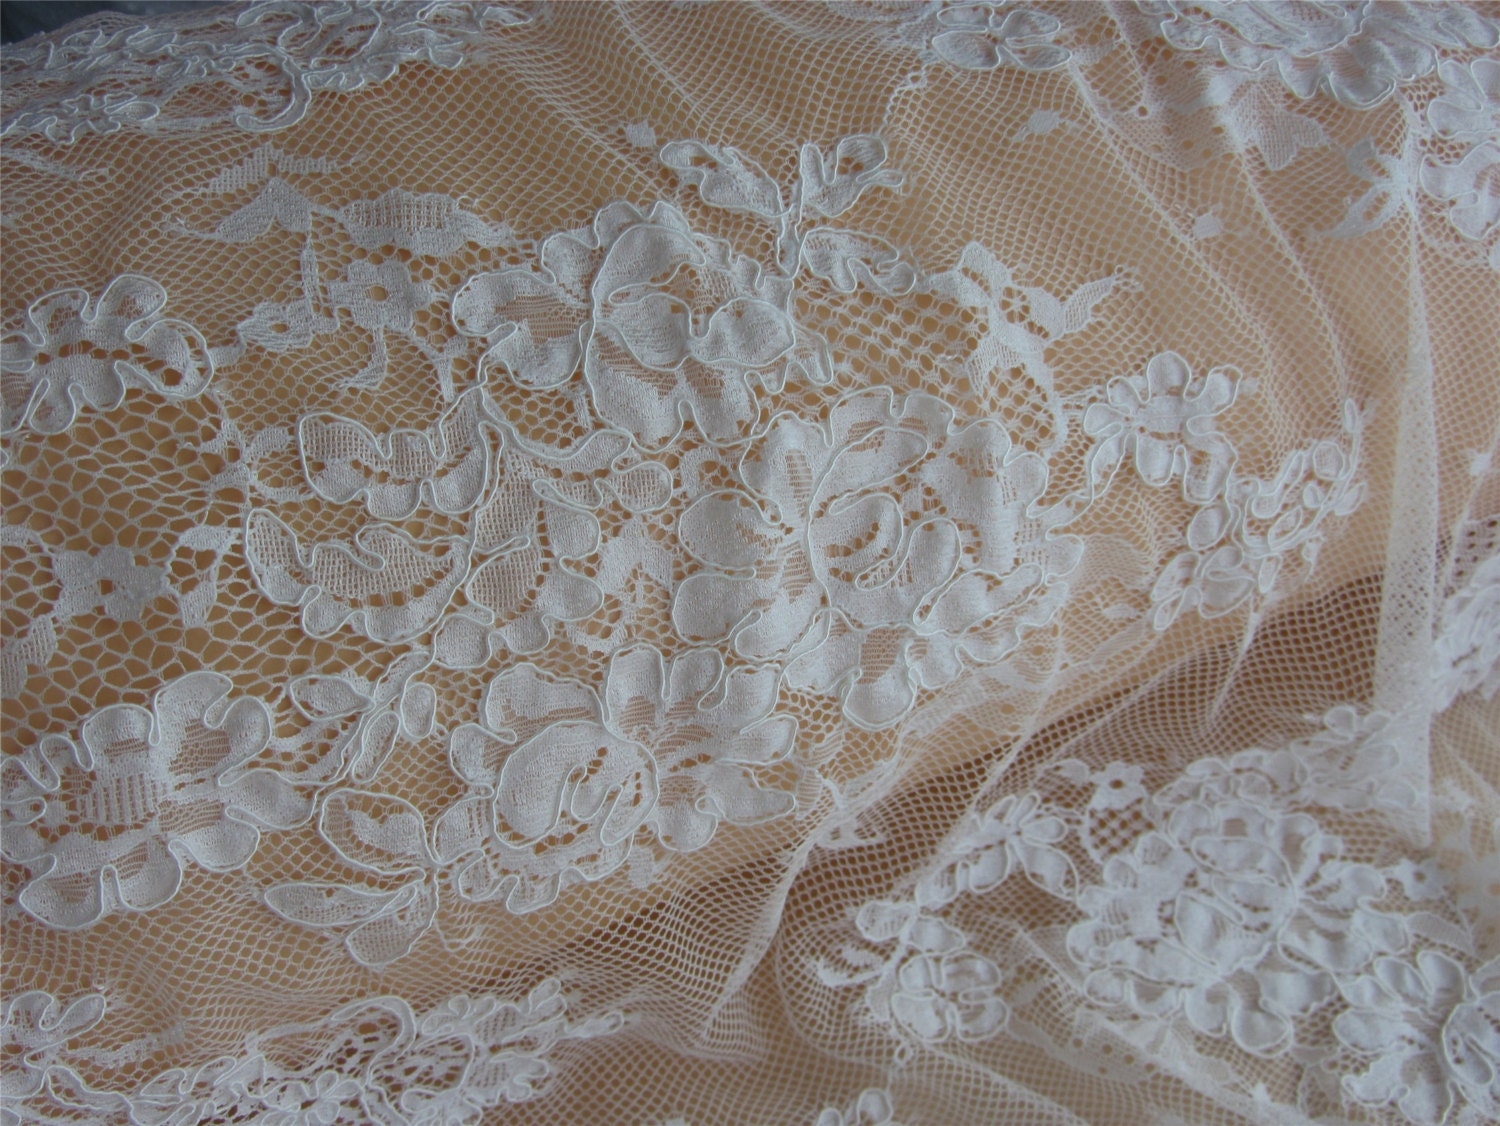 55 off white wedding lace fabric ivory lace fabric for Bridal fabric